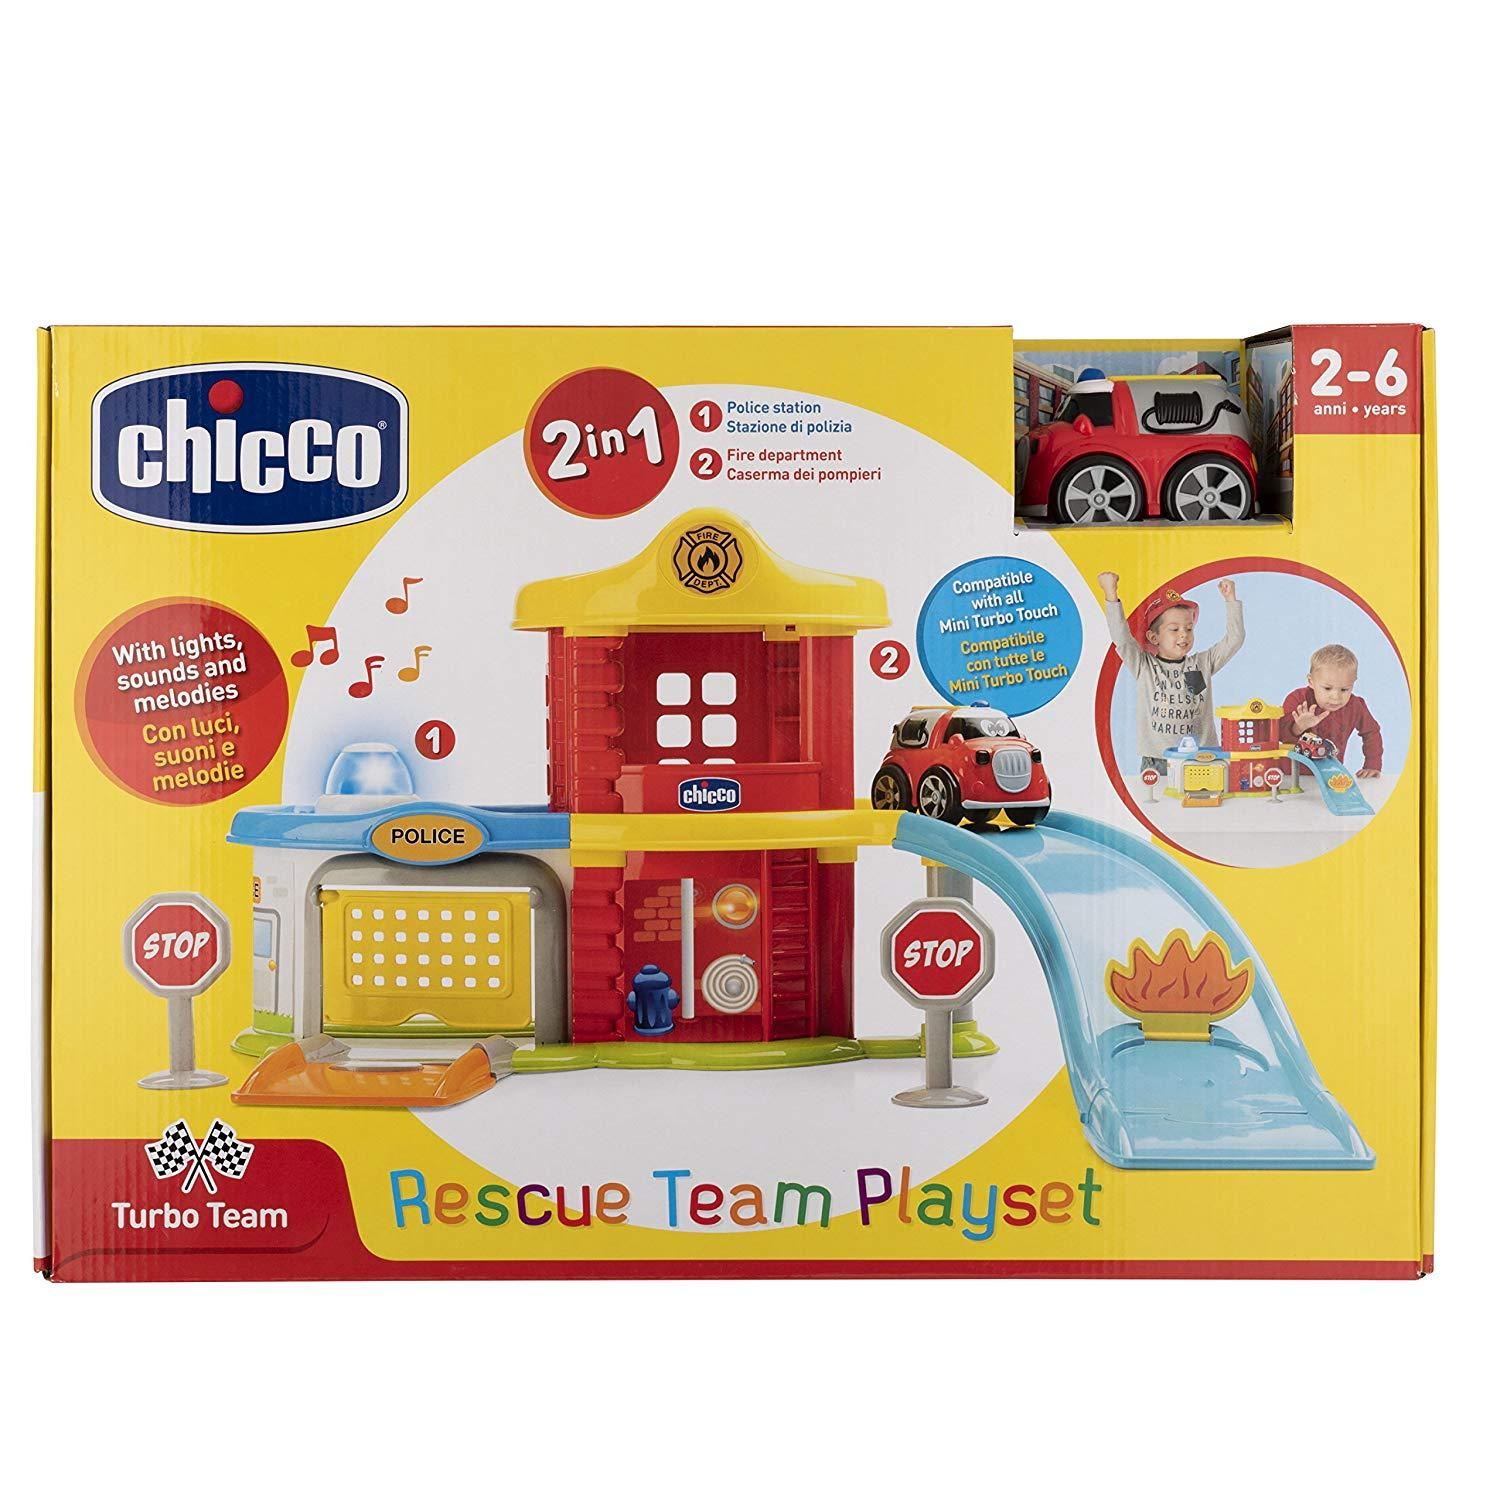 CHICCO RESCUE TEAM PLAYSET 09358 ARTSANA CHICCO